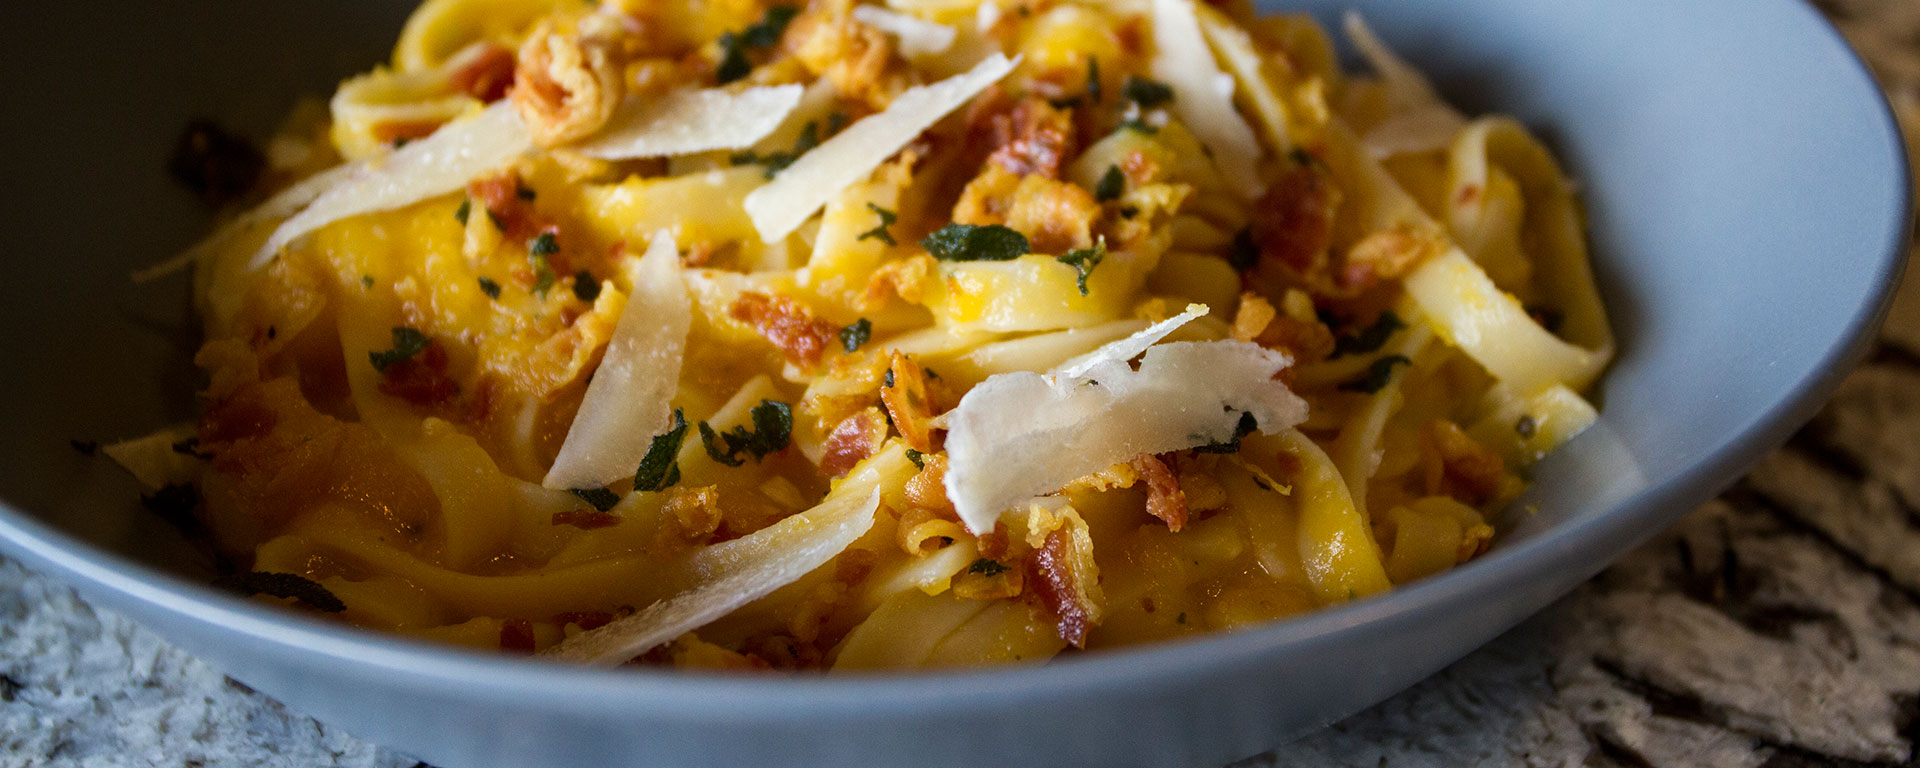 POLYWORLD-Blog-Winter-Squash-Carbonara-Pasta-FEATURED